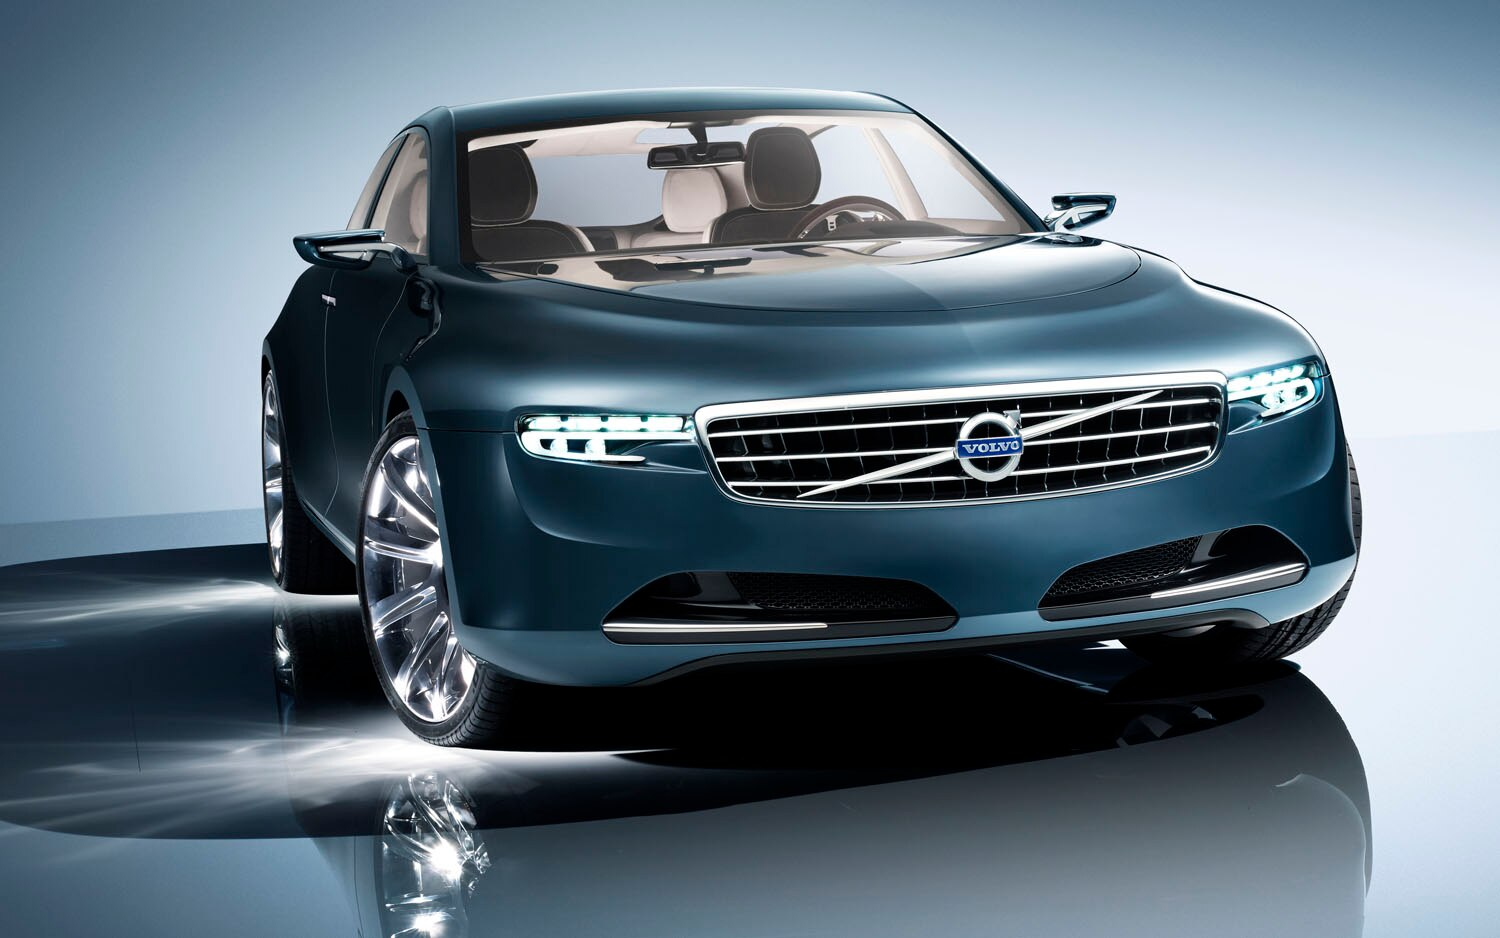 2012 Volvo Concept You Front Three Quarter 31